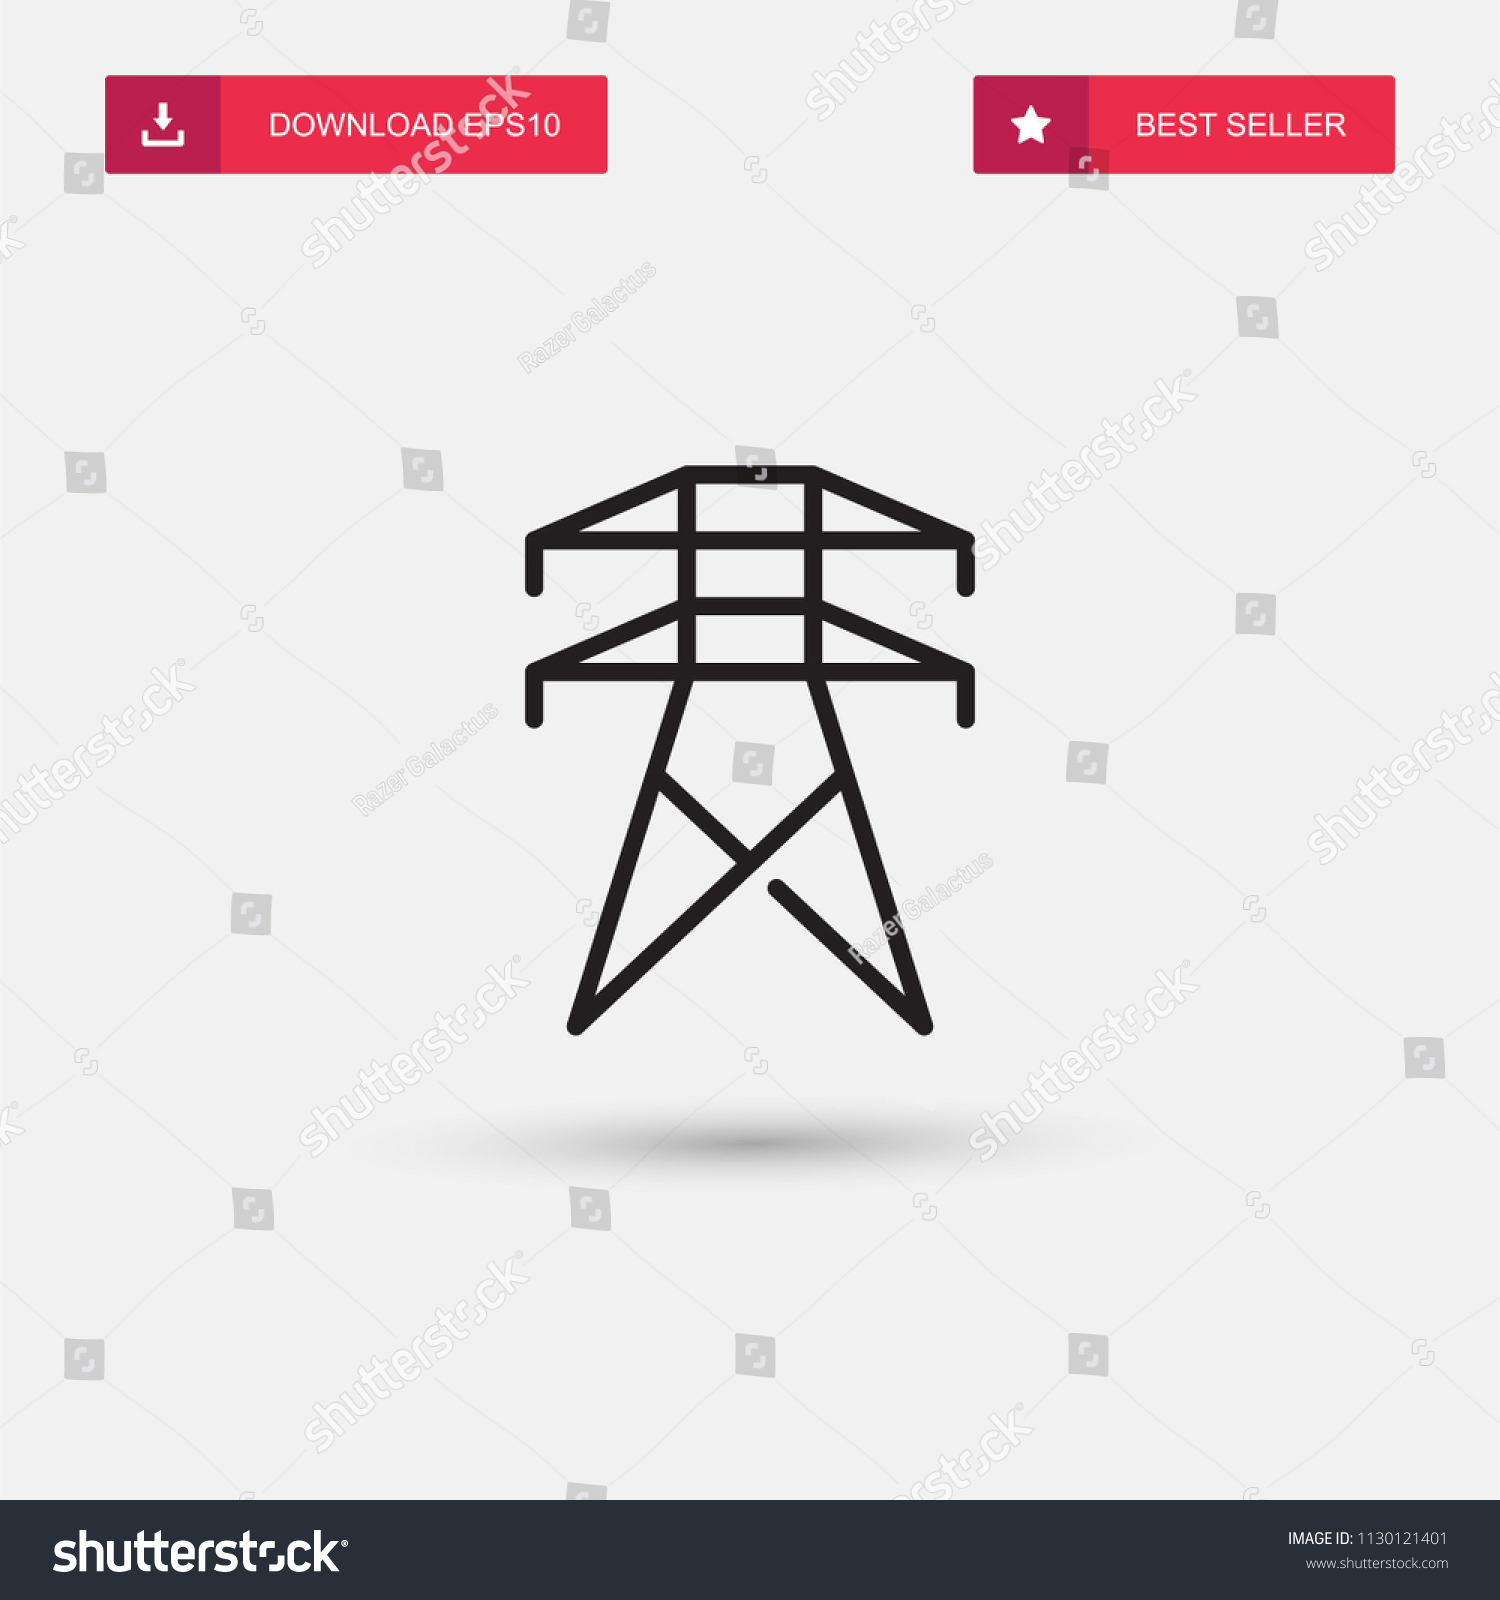 Outline Electrical Tower Icon Isolated On Stock Vector Royalty Free Drawing Symbols App Grey Background Modern Simple Flat Symbol For Web Site